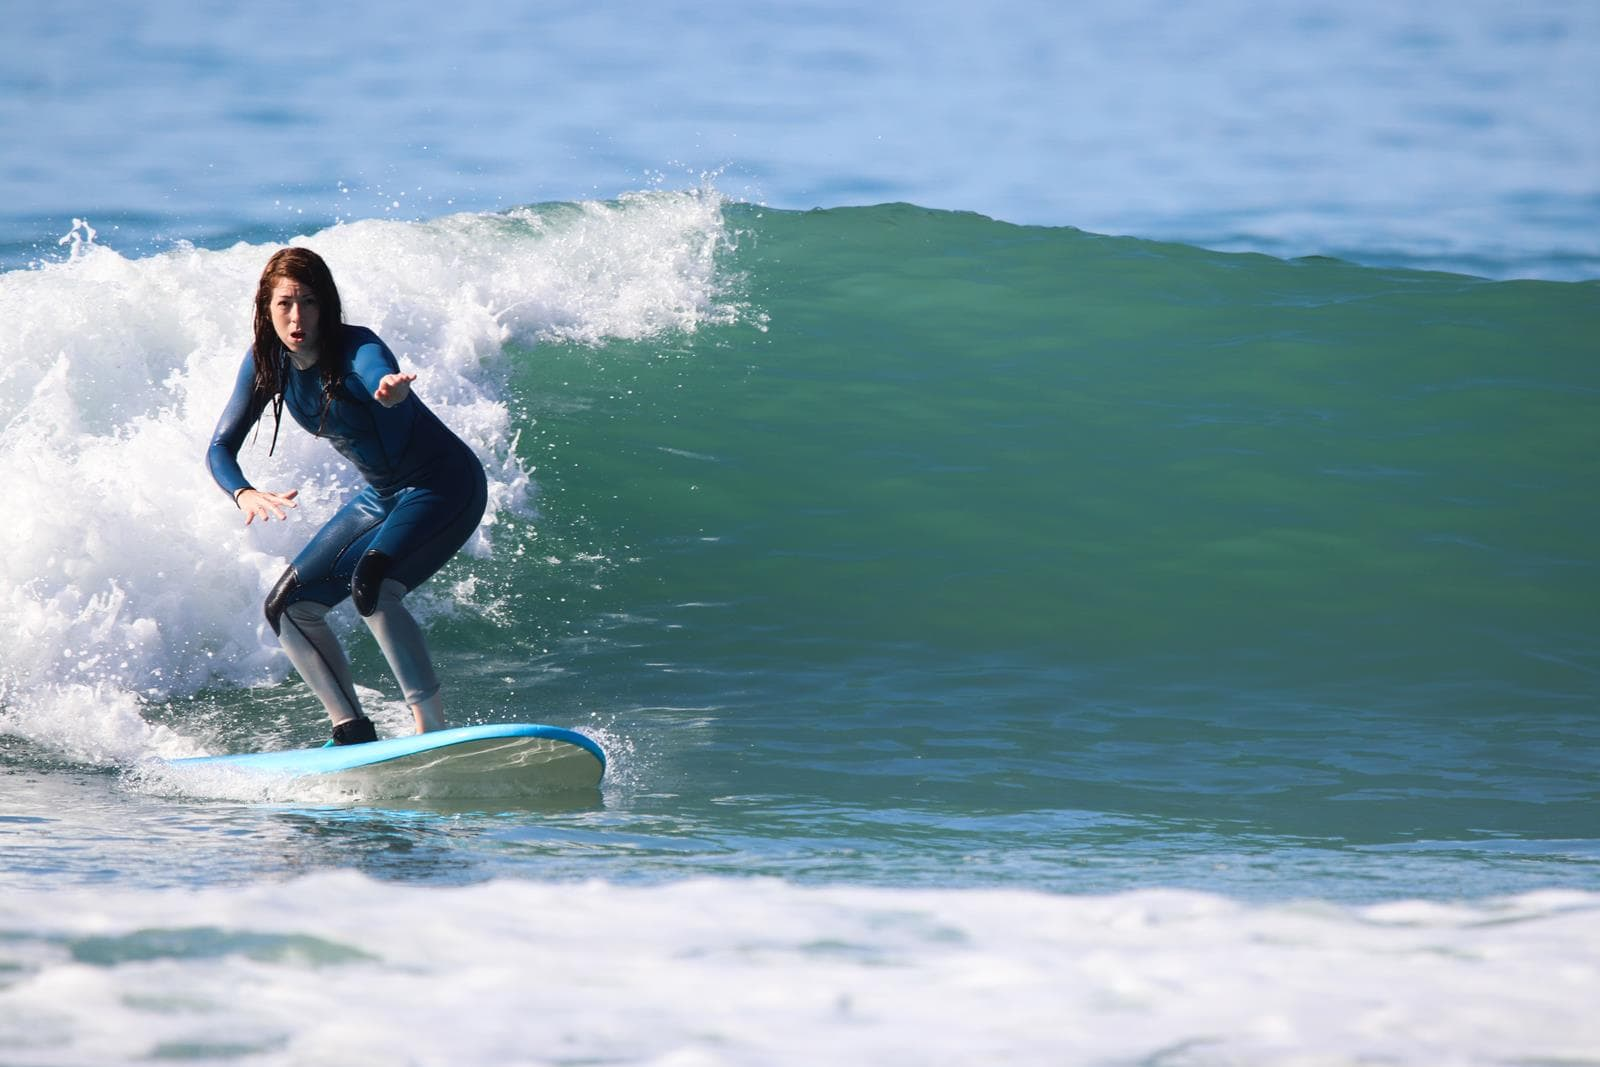 SURF GUIDING en nuestro surf camp